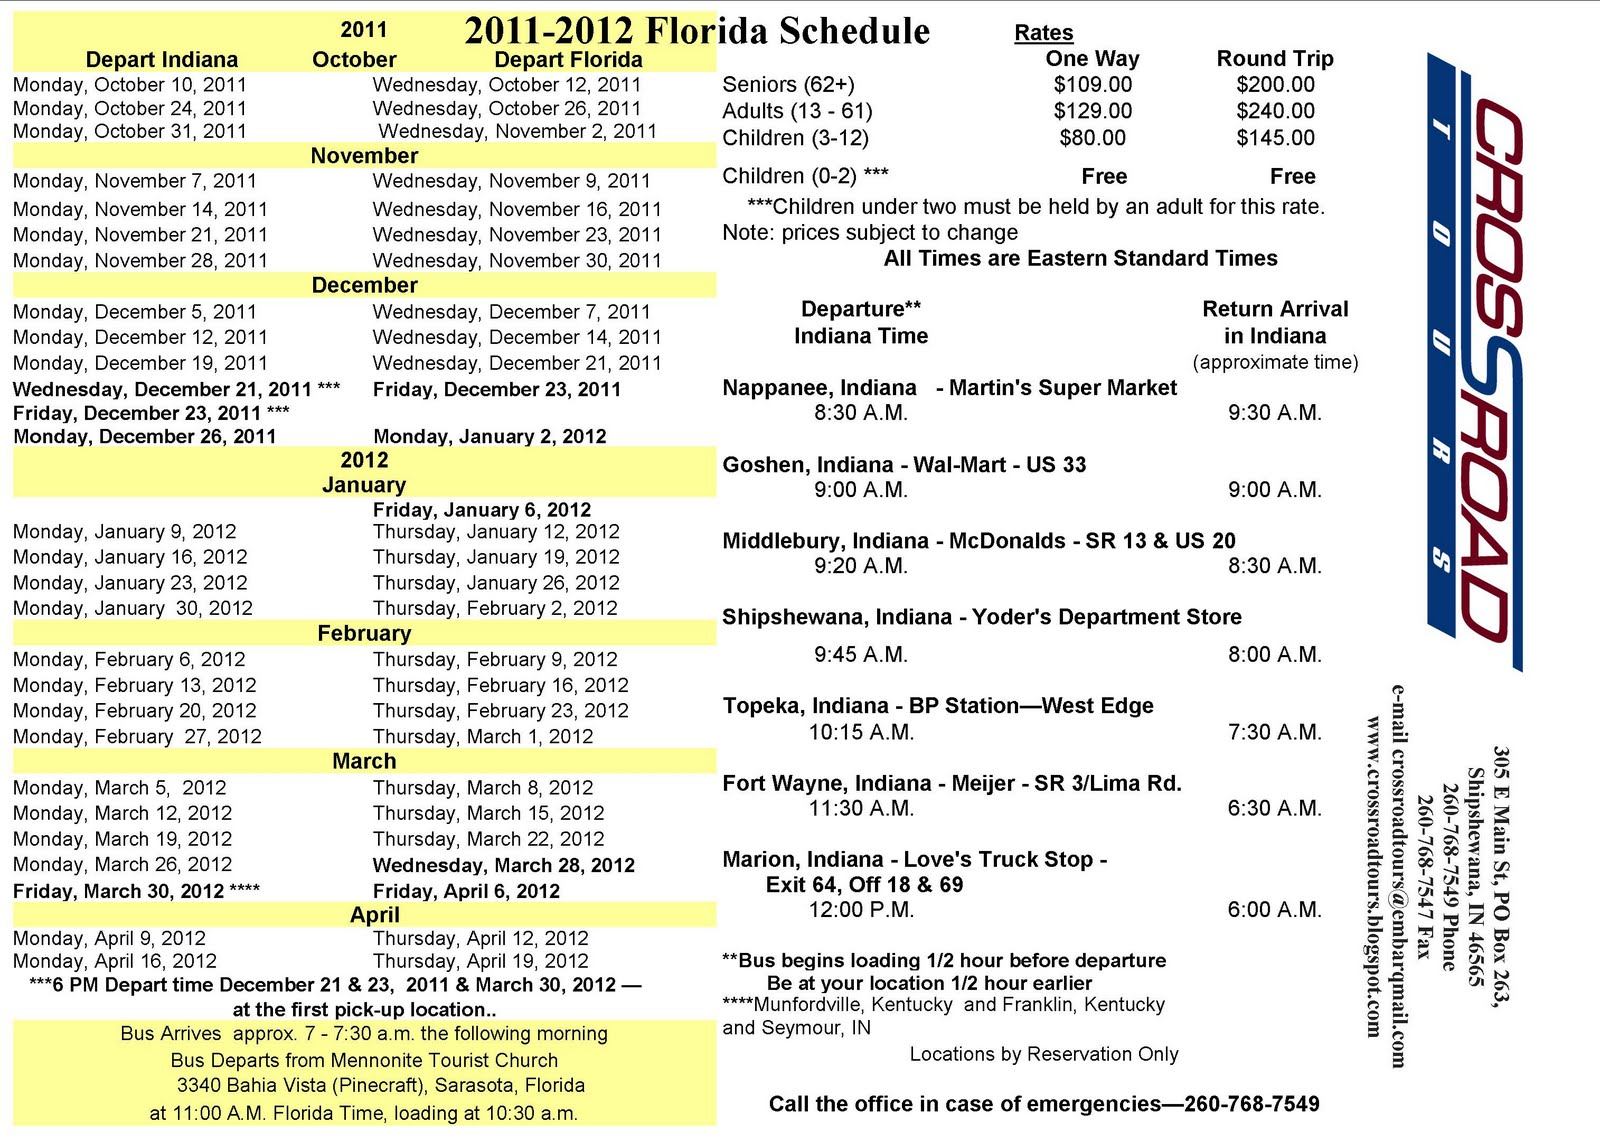 Florida Schedule 2011-2012